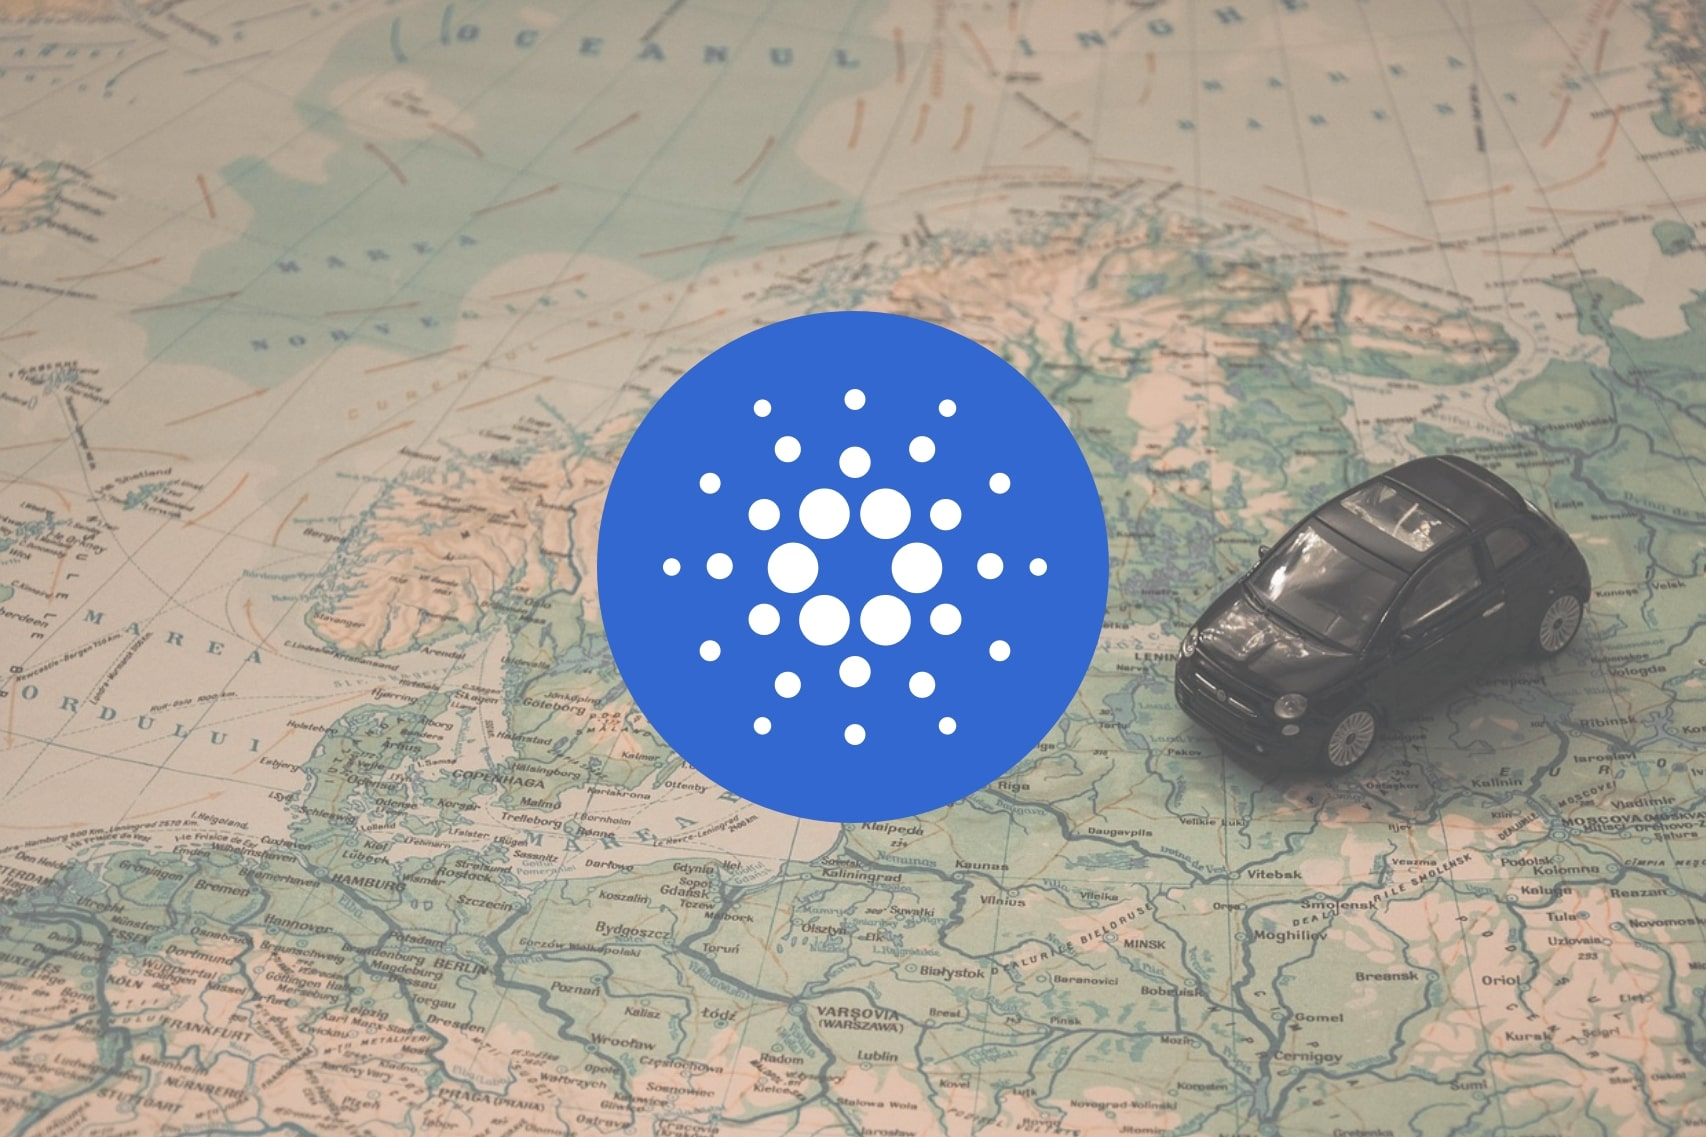 Cardano Updates Their Roadmap: What's Coming Next in Q4 2018